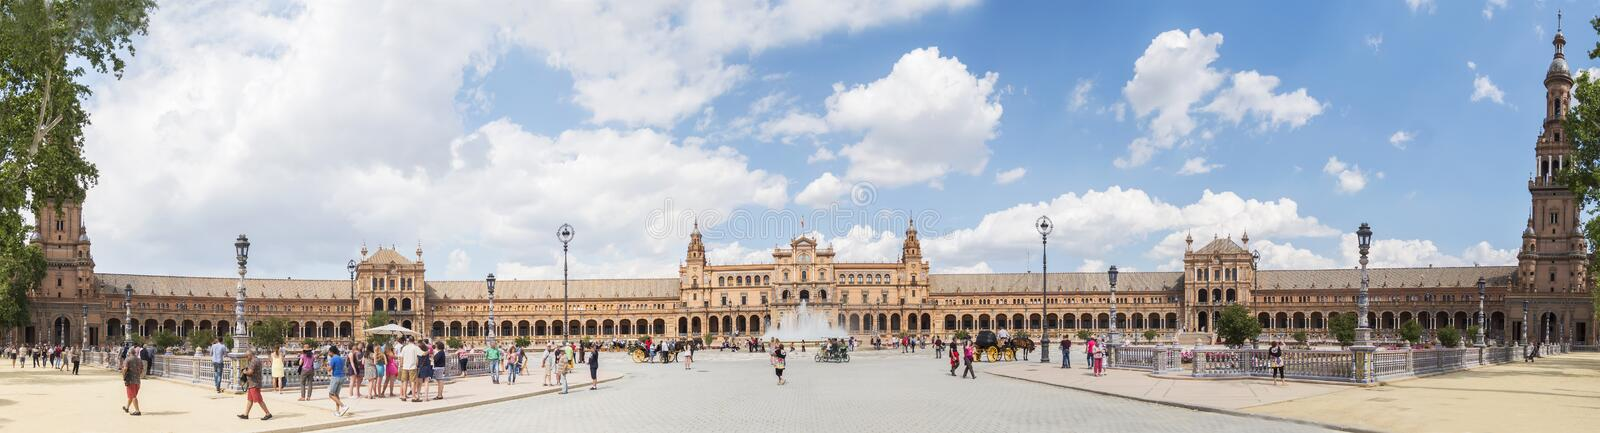 Plaza de Espana panoramic, Sevilla, Spain, Spain Square, Seville royalty free stock photos